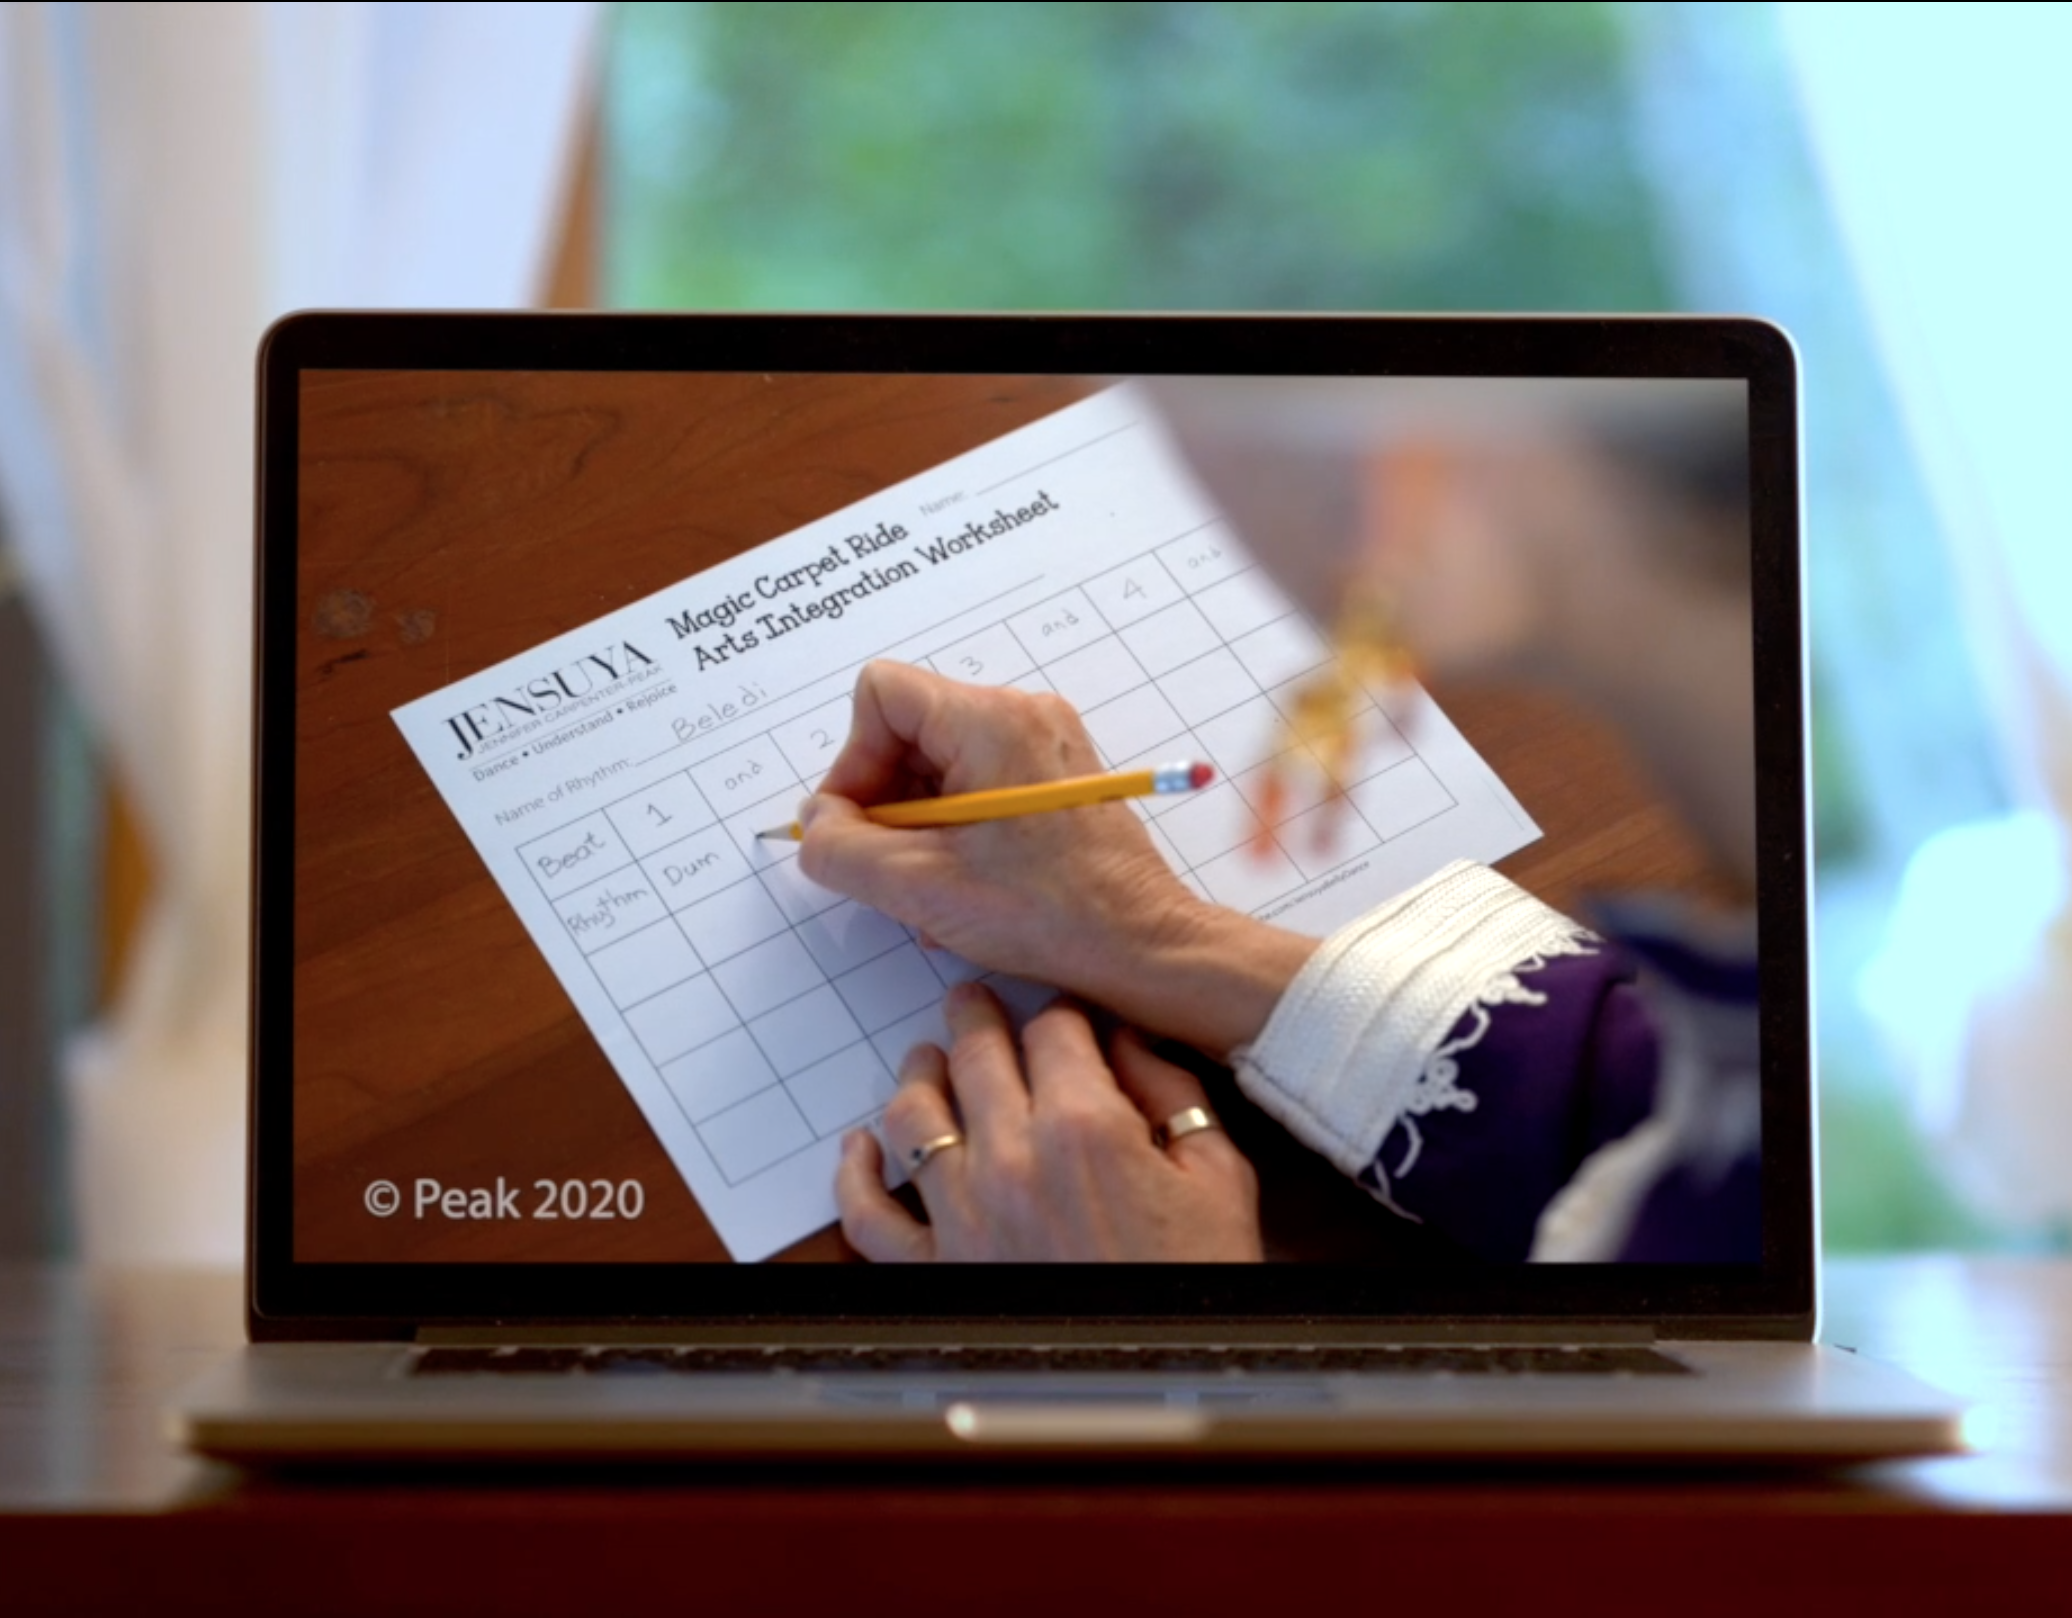 Online course on computer screen showing grade 3 worksheet in virtual school program.